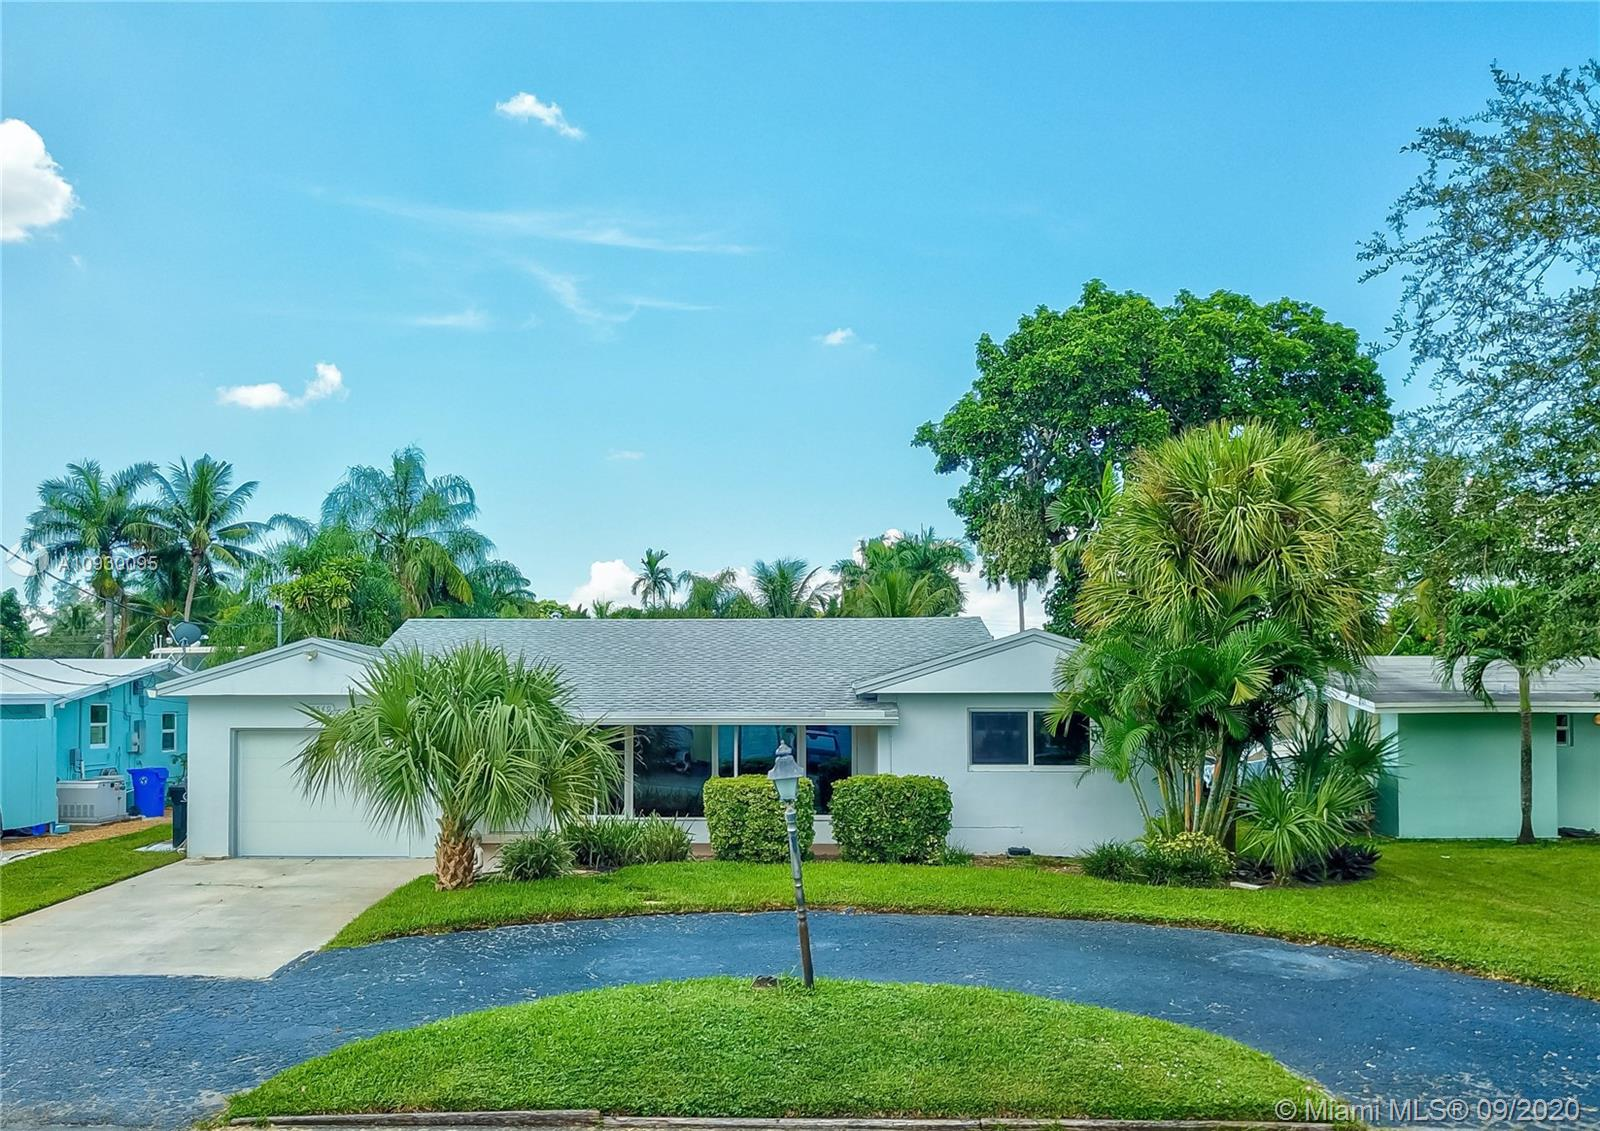 Beautiful waterfront pool home with garage. Home has direct ocean access with 65' on the water and no restrictive bridges. Boaters Paradise. Live the luxurious florida lifestyle at a fraction of the price. This is the LAST of affordable deep water ocean access homes in South Florida. LED's lighting throughout. Your insurance company will love you for the newer roof, newer ac, upgraded electric panel and upgraded to impact windows. This home is eager to be transformed by your cosmetic preferences. Architectural drawings available for buyers wishing to add a third bedroom & bathroom.